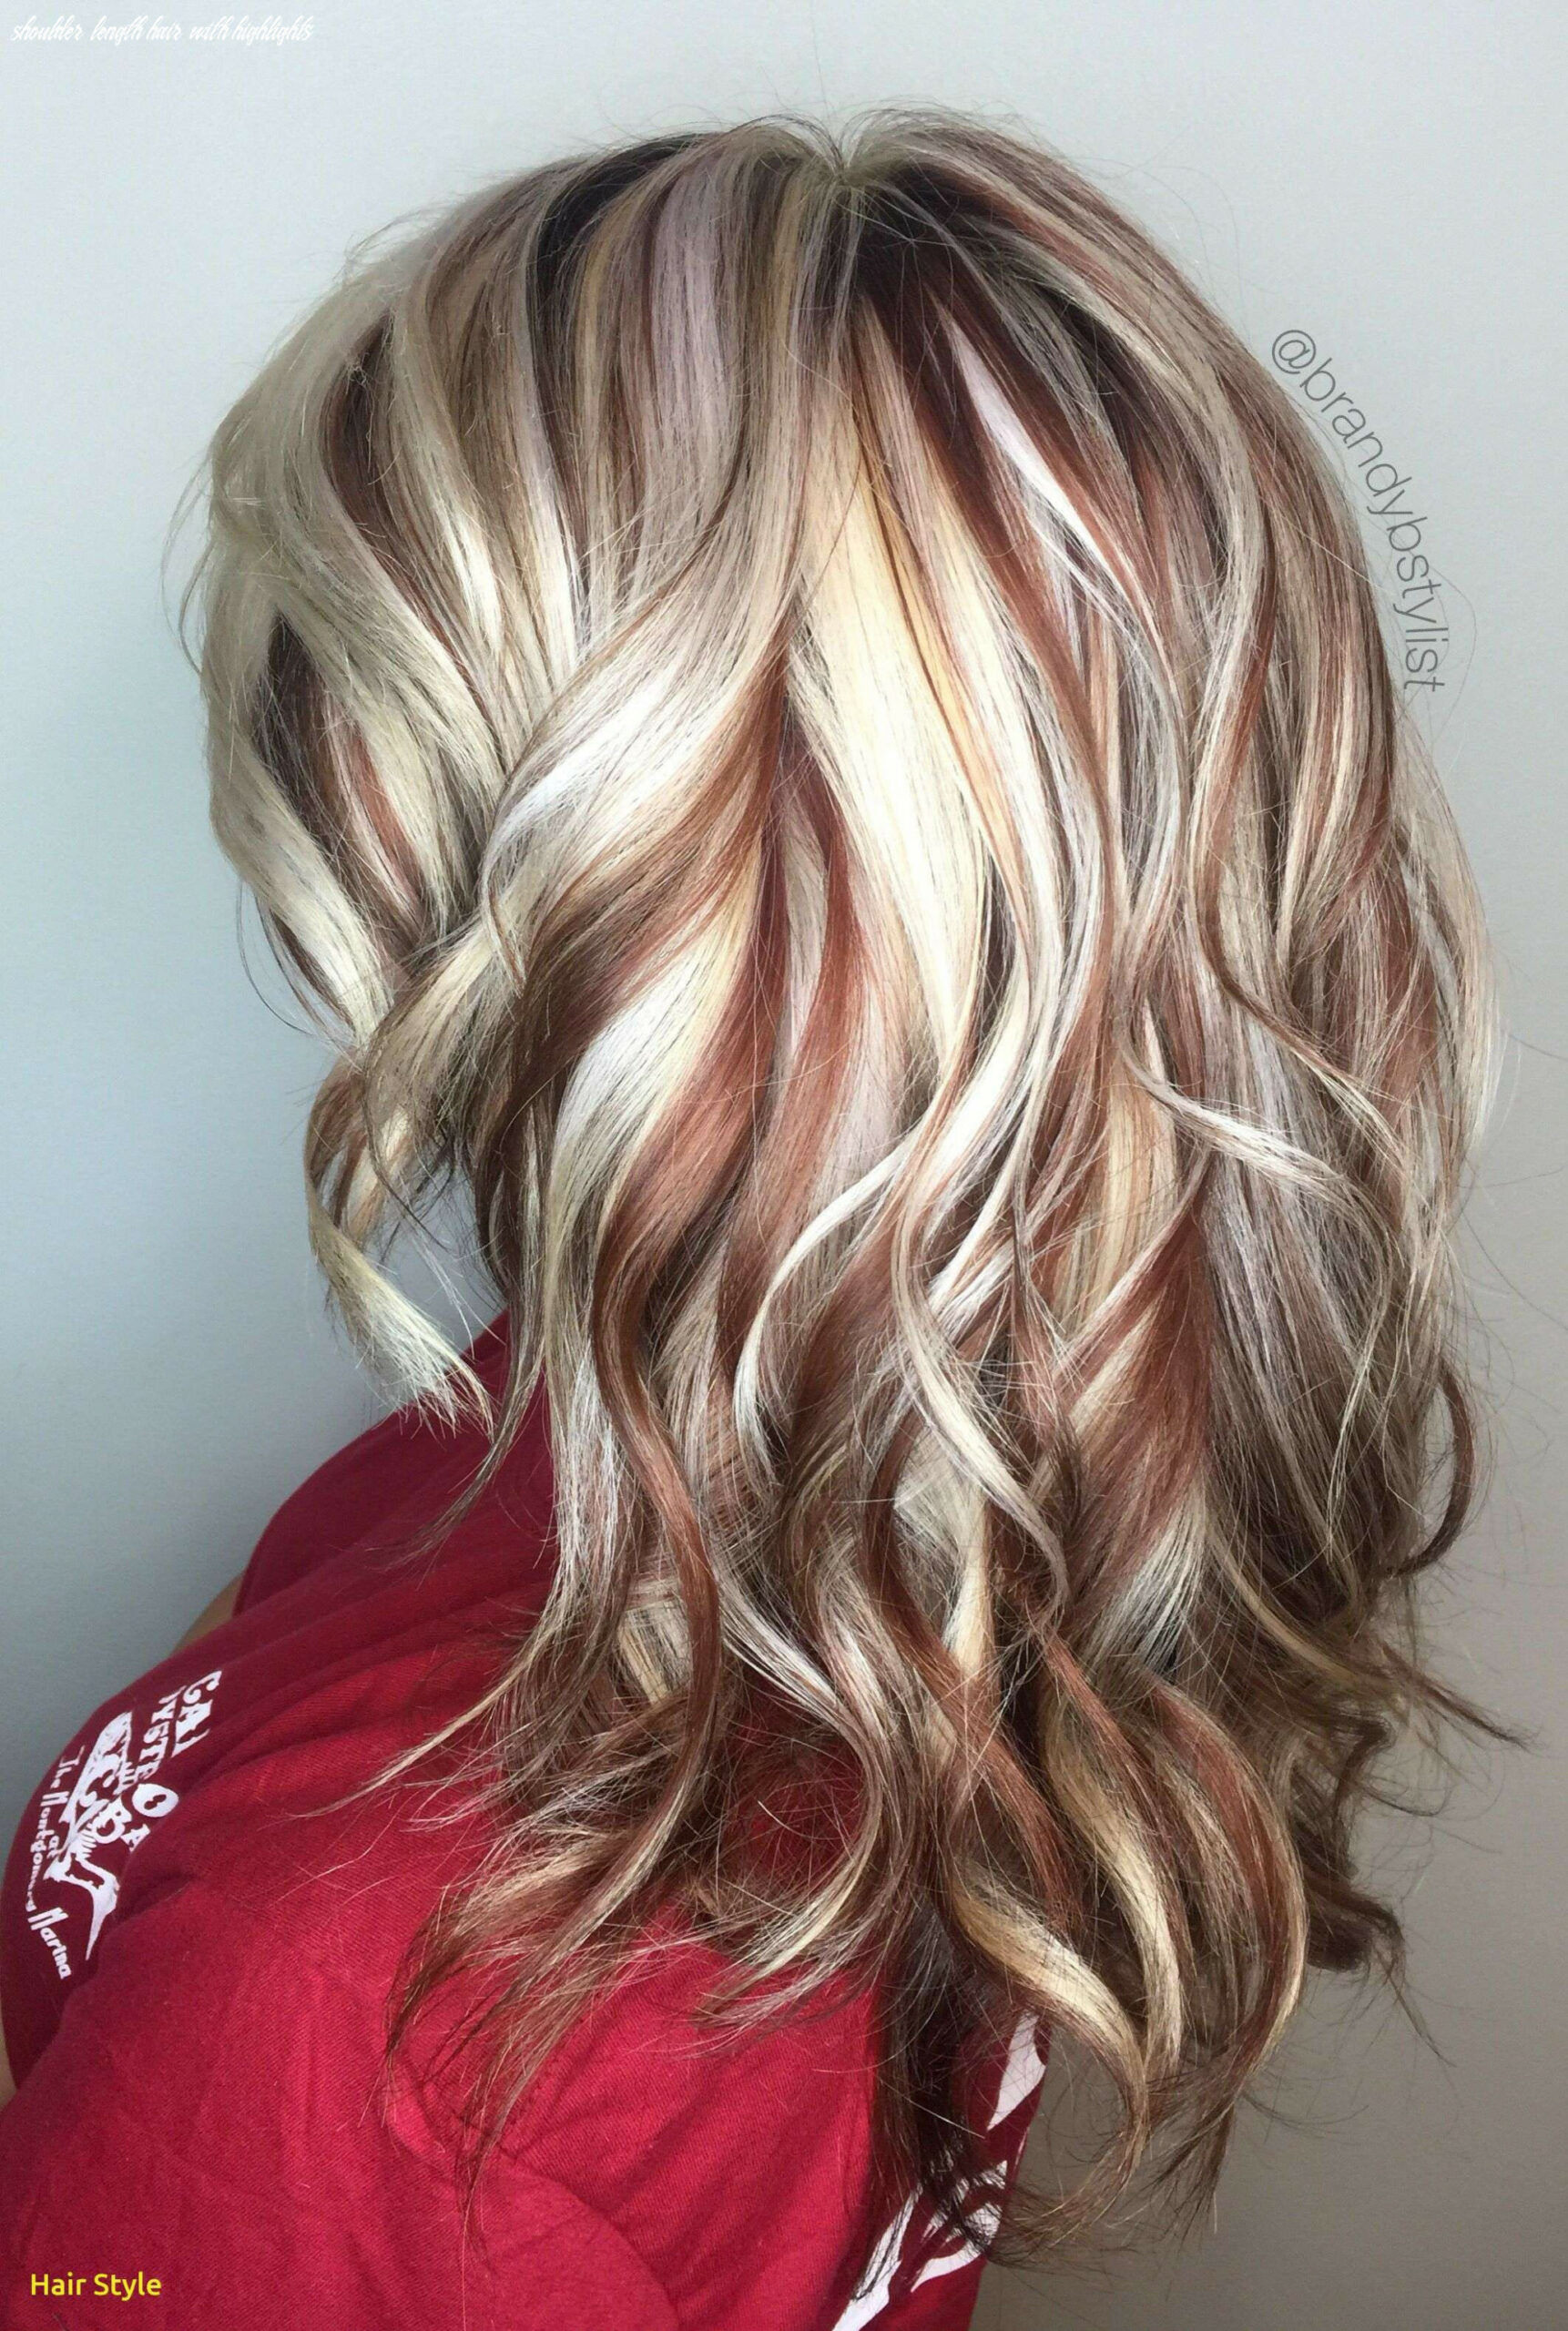 Medium length hairstyles with highlights awesome luxury hair